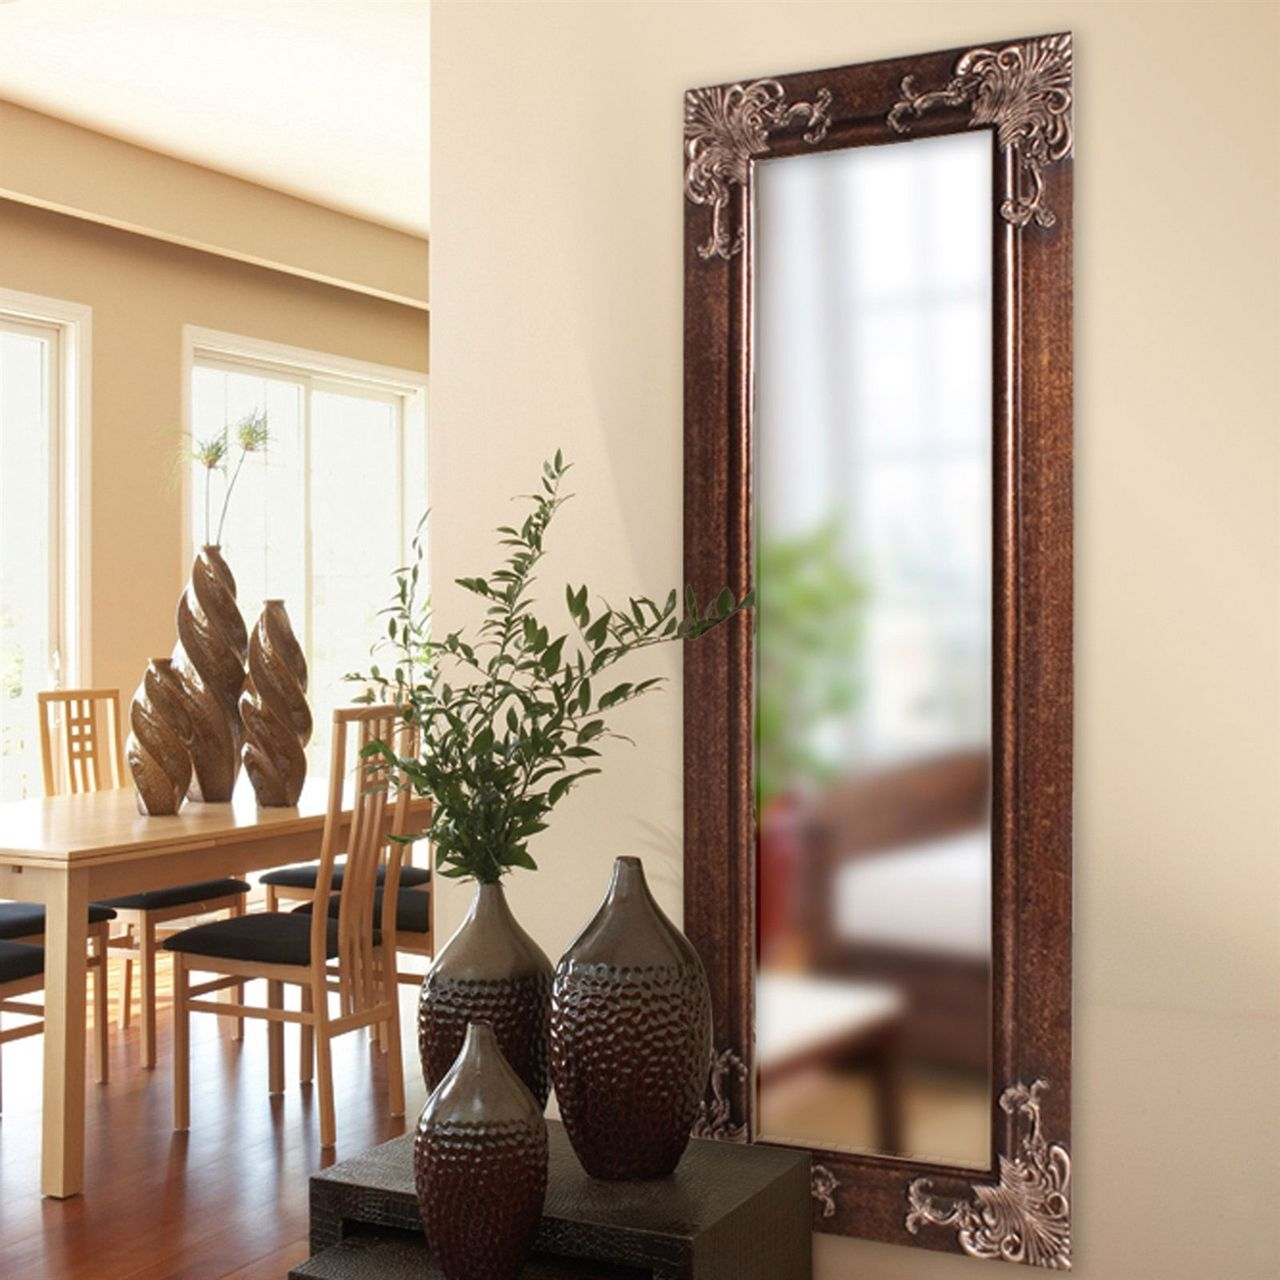 Full Length 63 Wall Mirror Wood Frame Antique Silver Gold Accents Mirror Wall Vintage Mirror Wall Wall Mirrors With Wood Frames